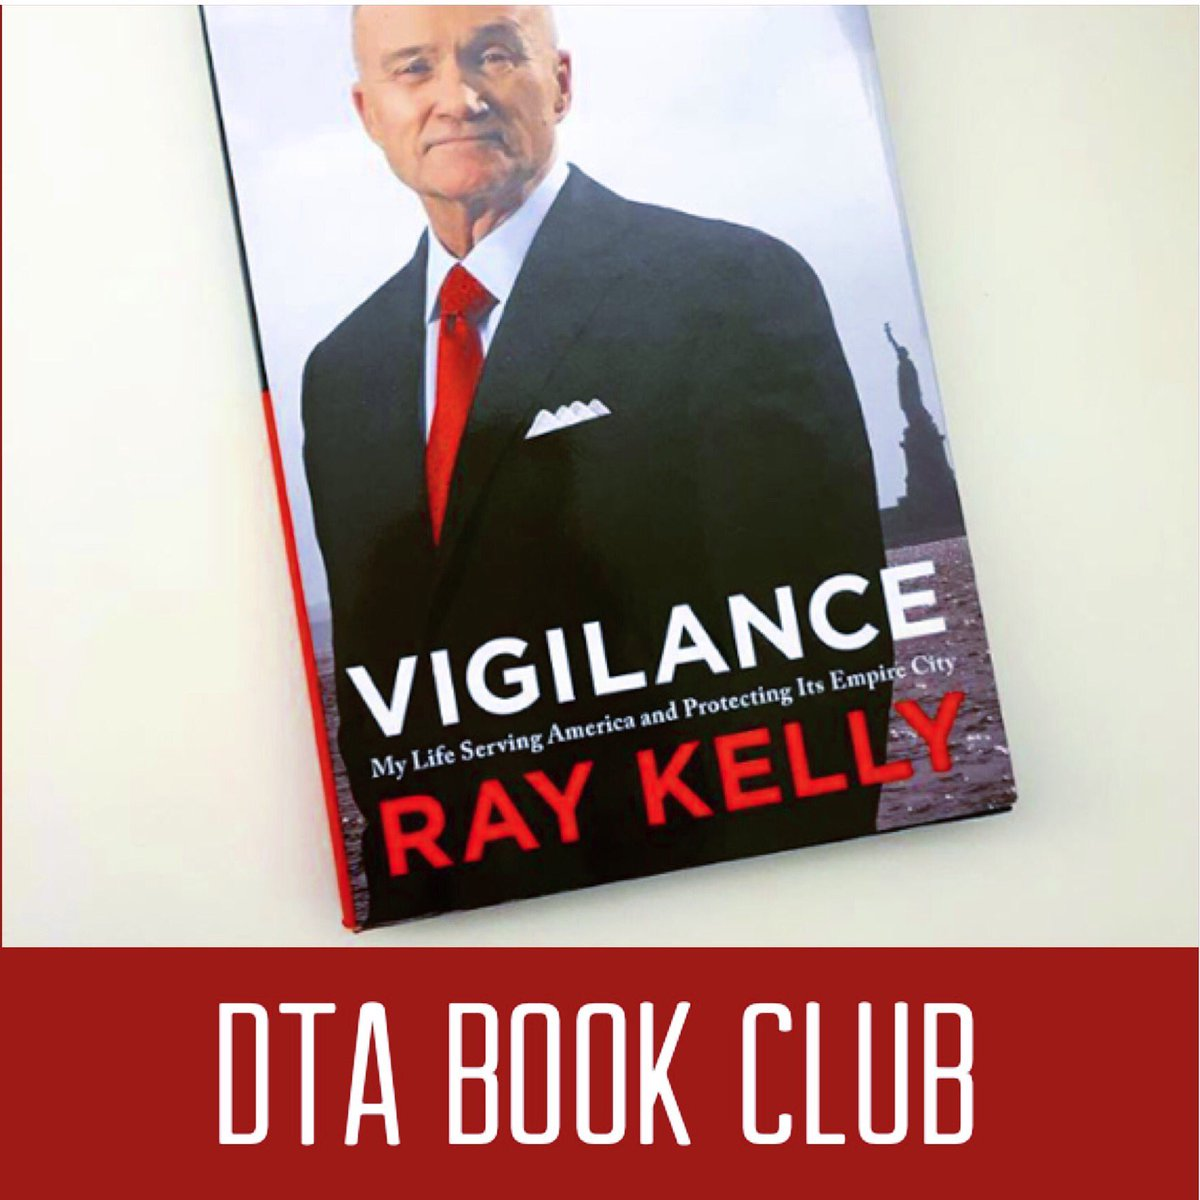 Join us for our first DTA Book Club! #downtownassociation #thedta #bookclub #booknerd #raykelly #vigilence : @hachettebooks<br>http://pic.twitter.com/S9sSTOzEGJ